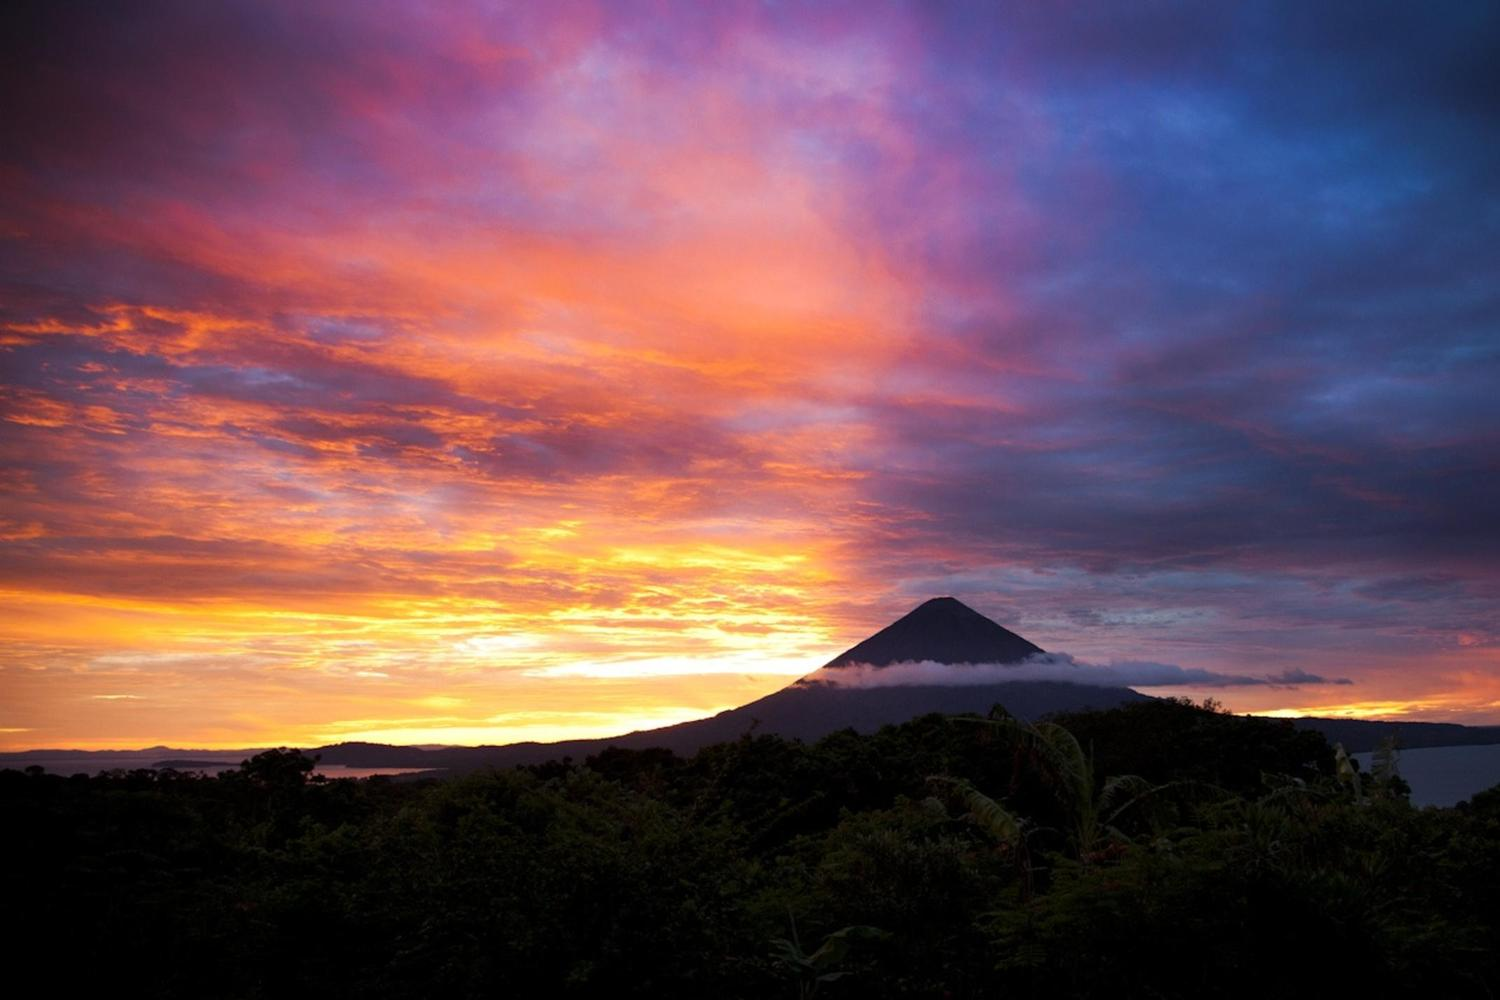 Sunset over Totoco Ecolodge on the island of Ometepe, Nicaragua